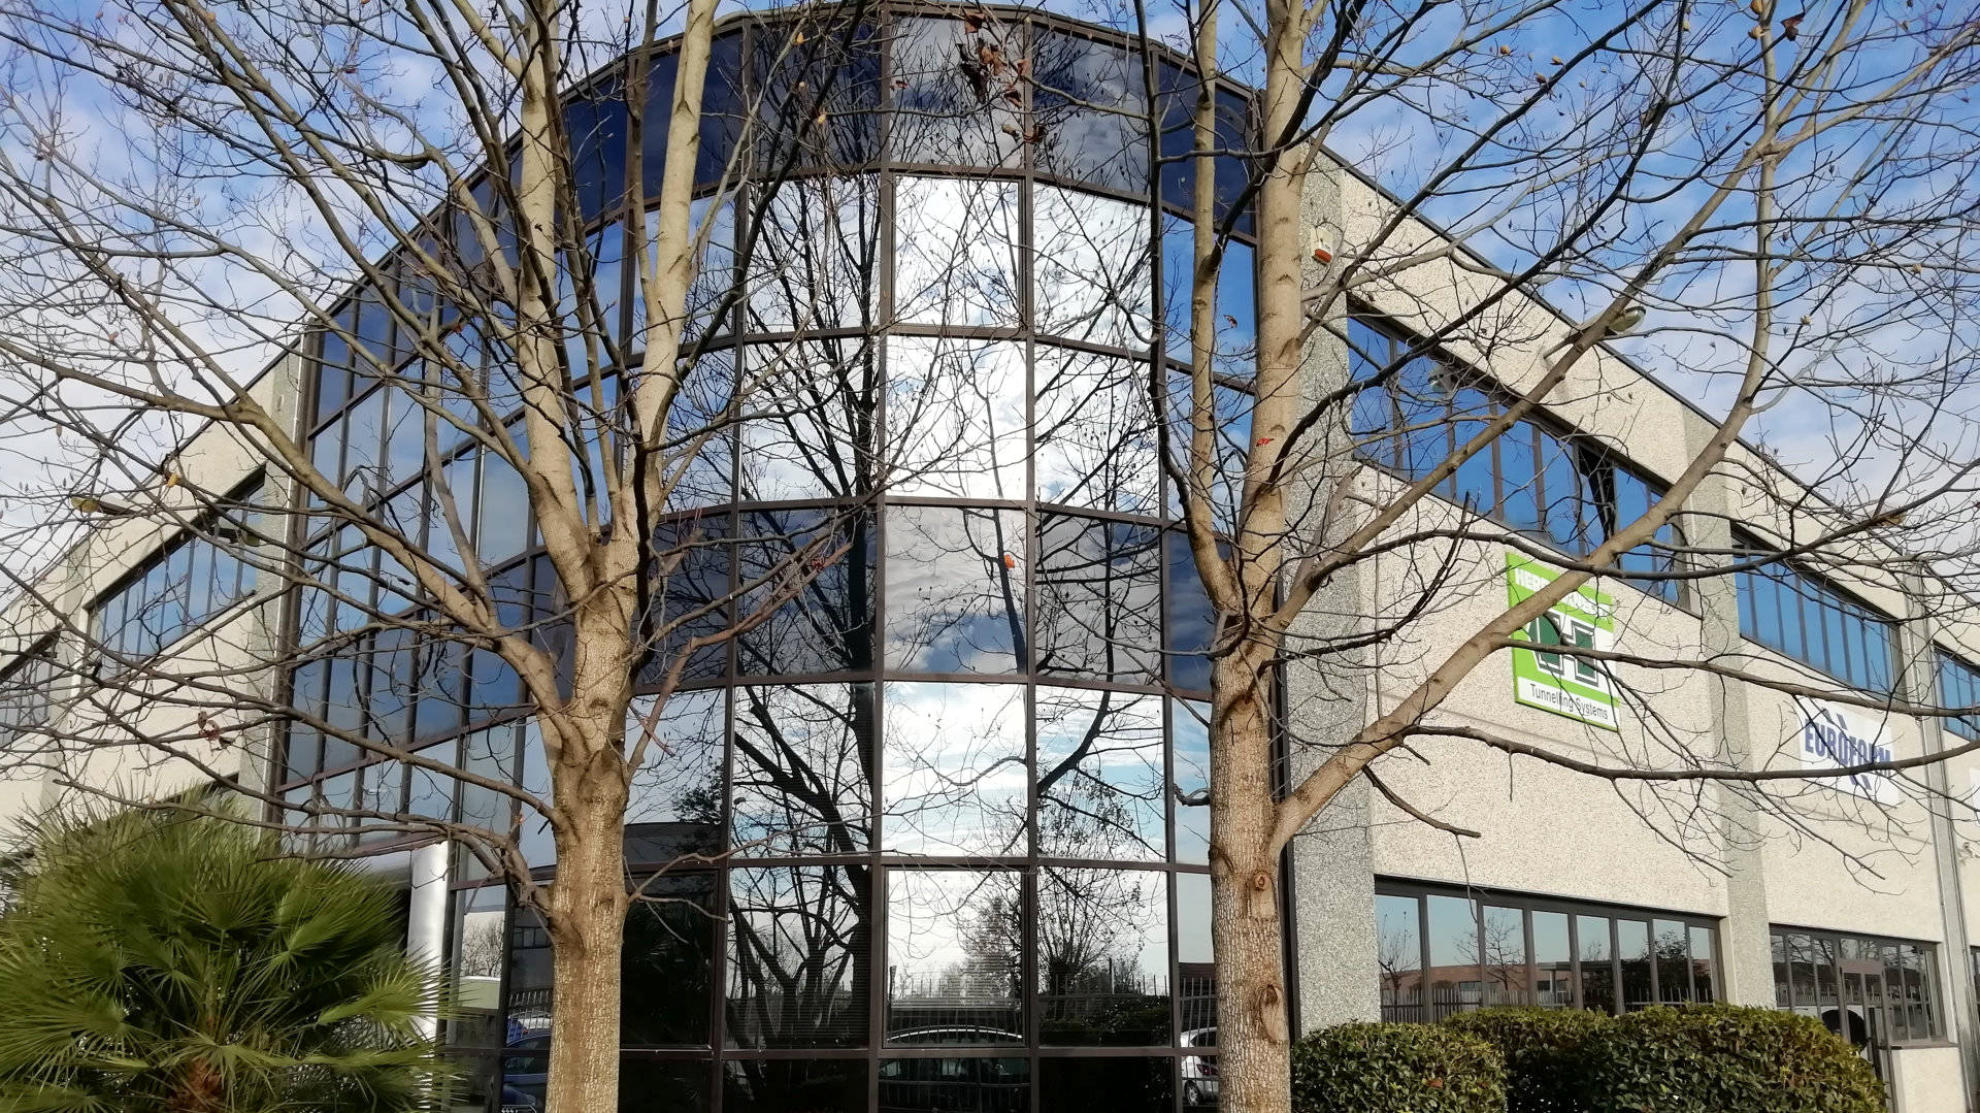 Euroform head office in Gessate, via Monza 118